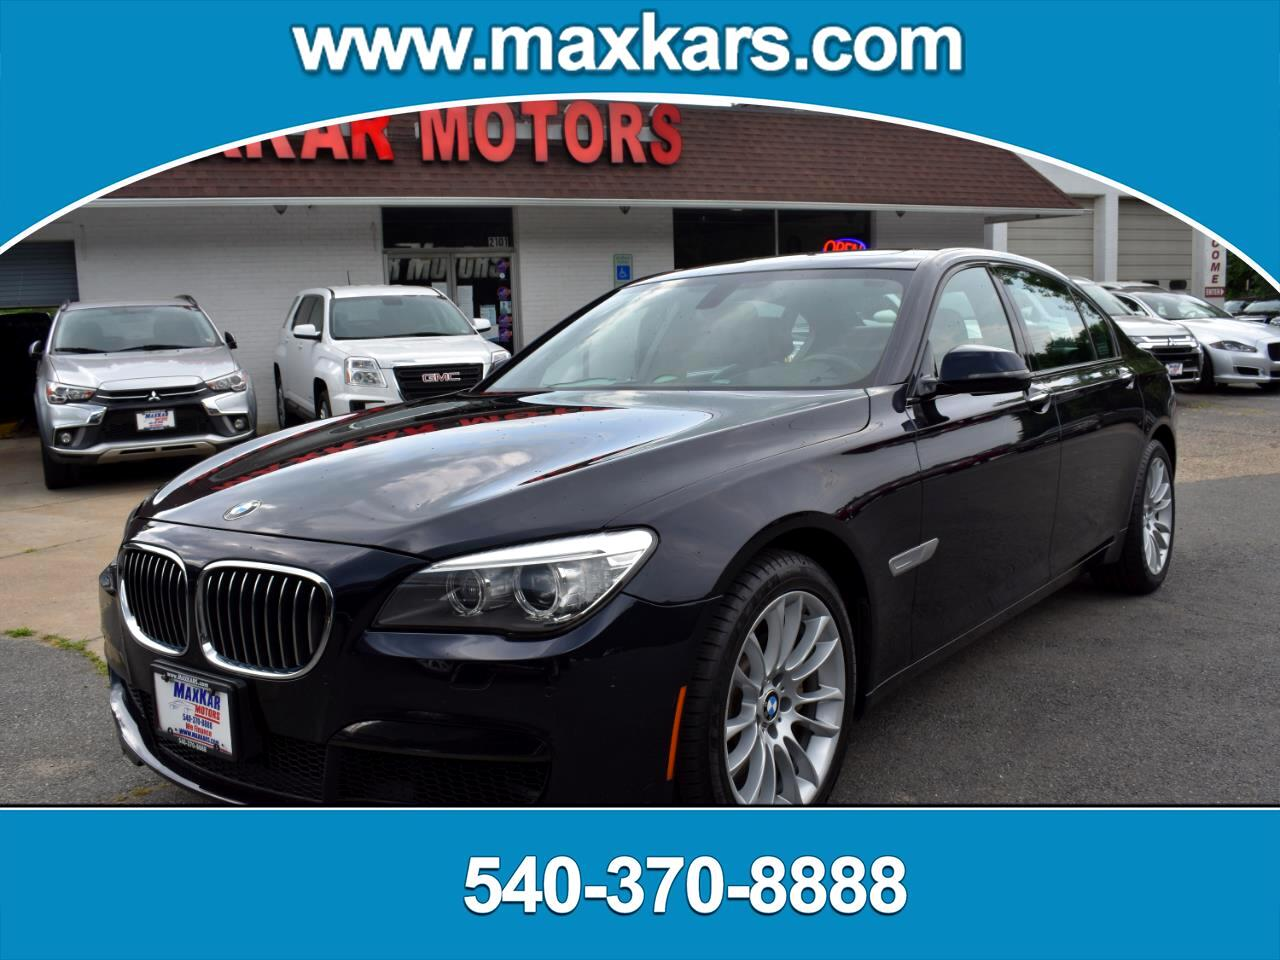 BMW 7 Series 4dr Sdn 750Li xDrive AWD 2014